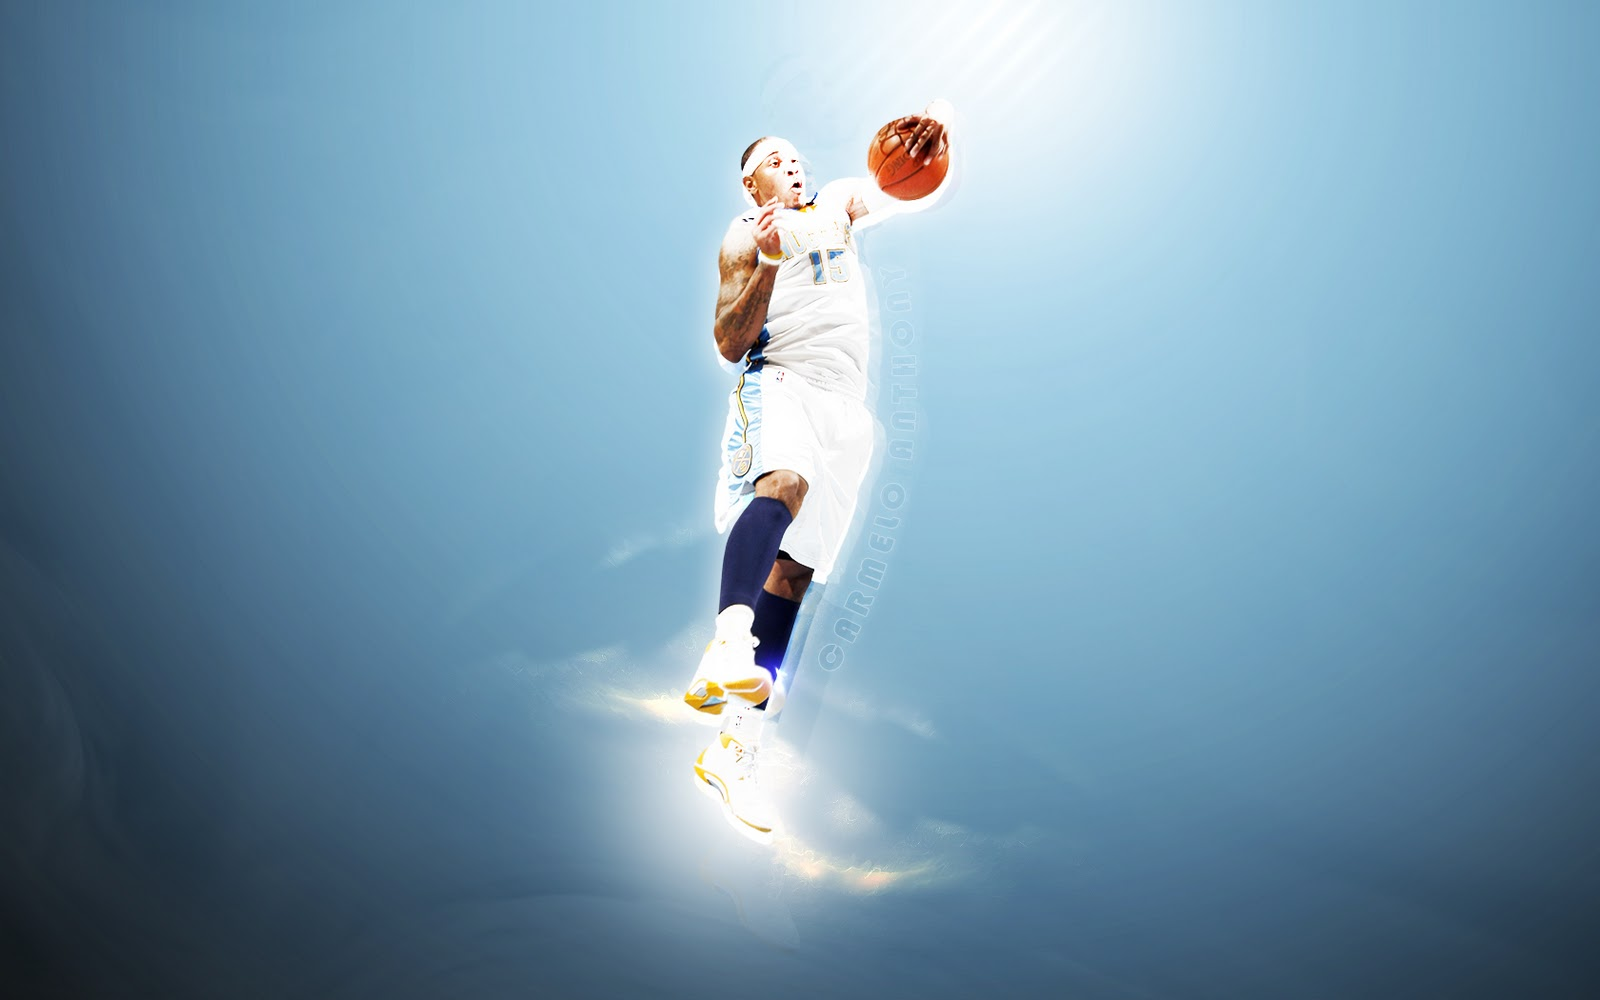 basketball wallpapers hd a1 wallpapers